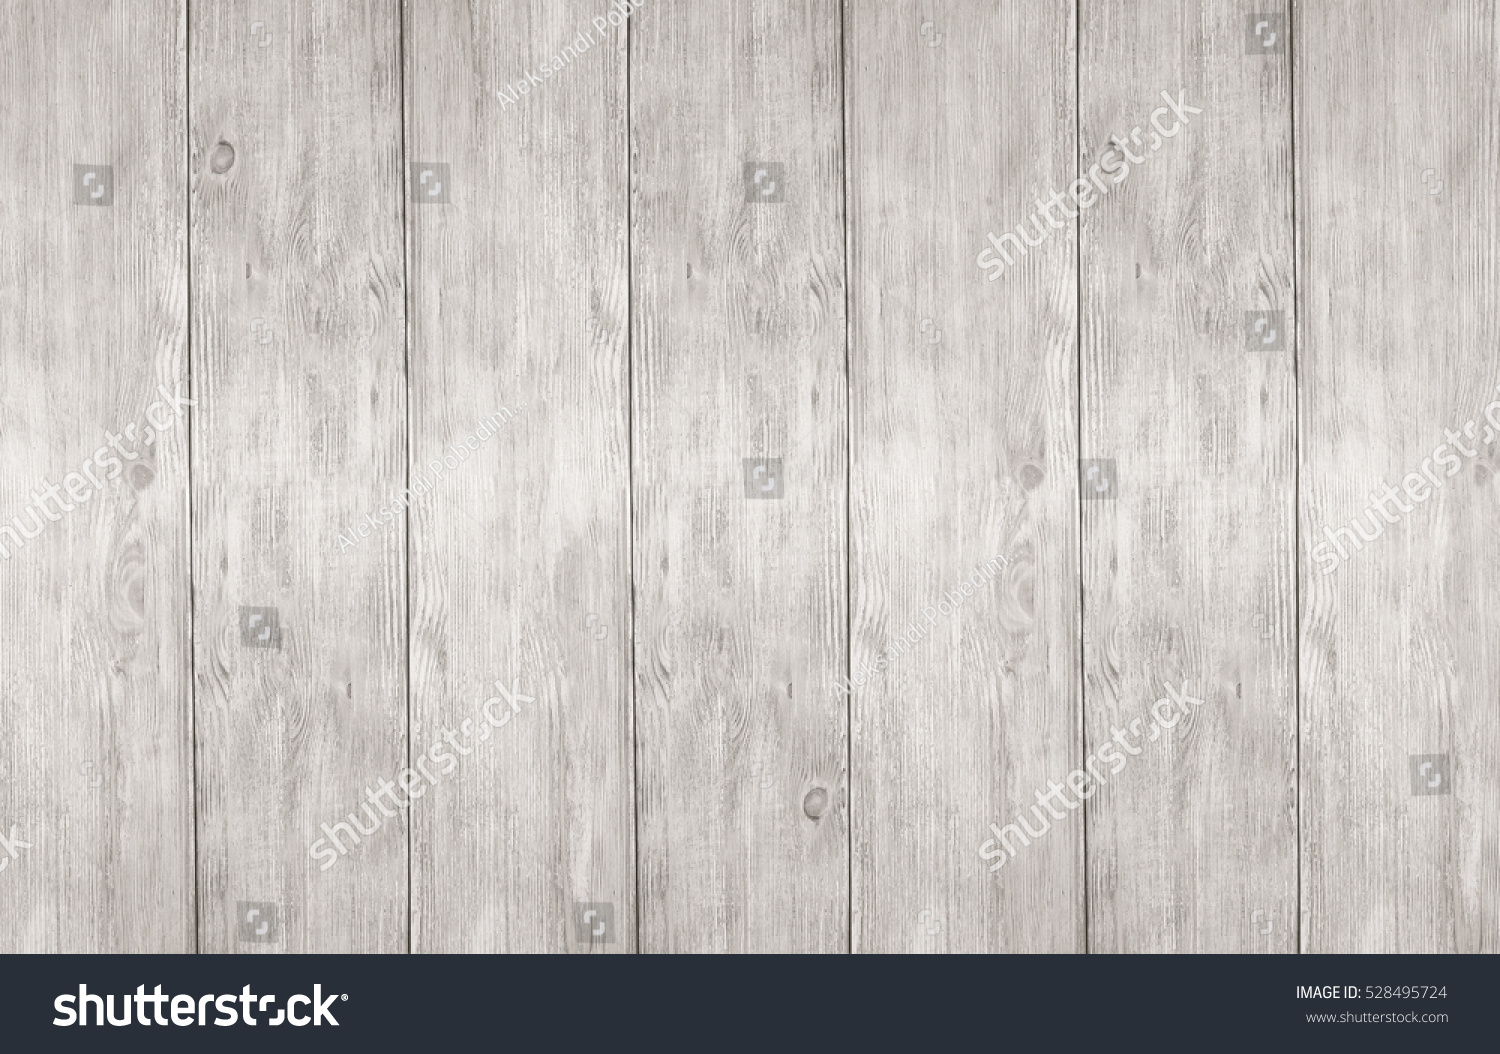 Whitewash Wooden Planks Boards Panel Texture Stock Photo